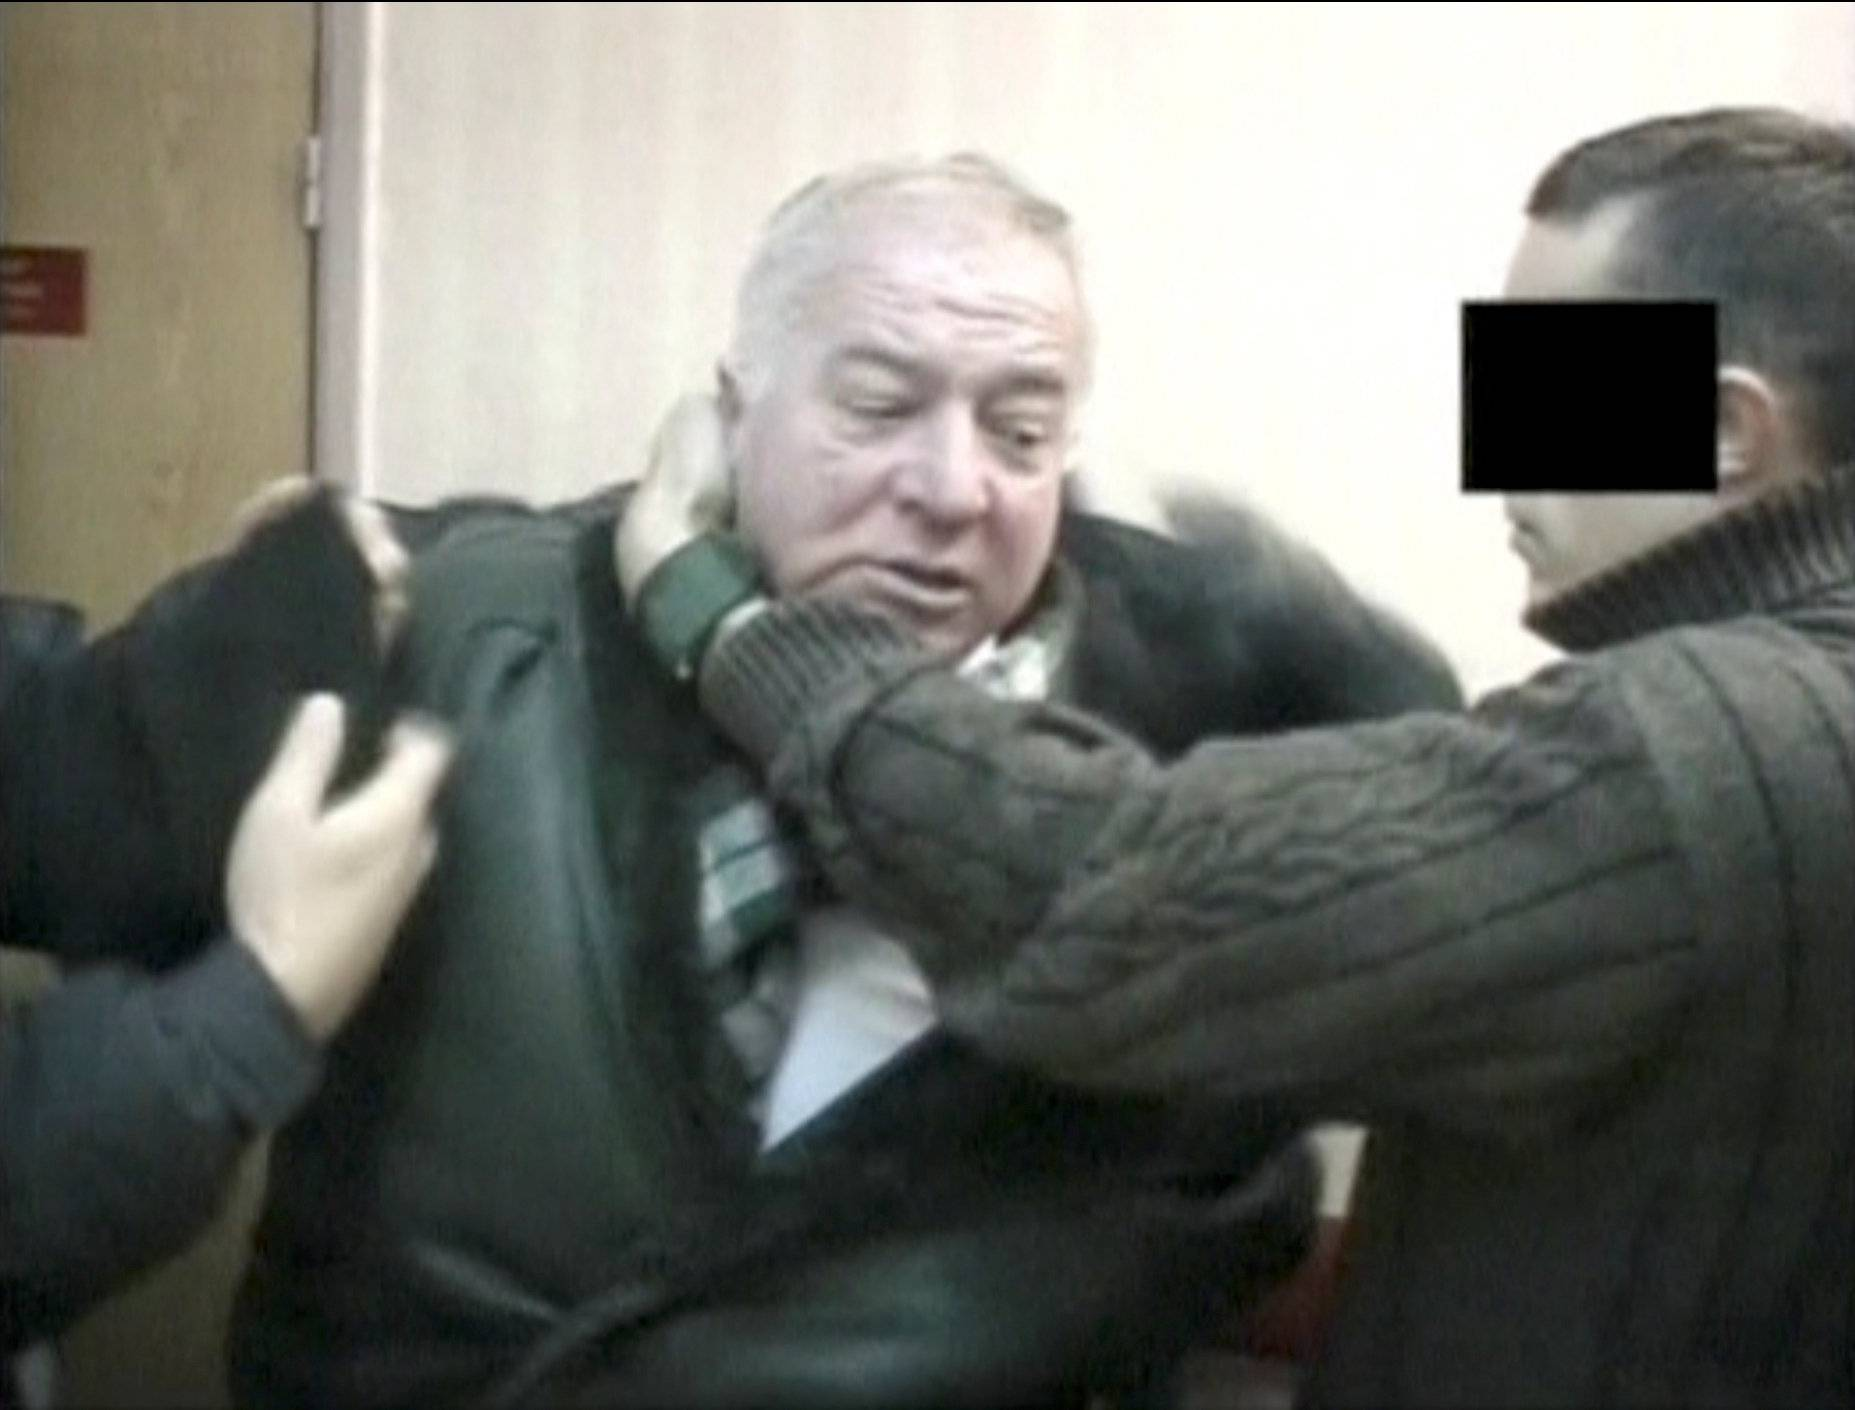 A still image taken from an undated video shows Sergei Skripal, a former colonel of Russia's GRU military intelligence service, being detained by secret service officers in an unknown location.